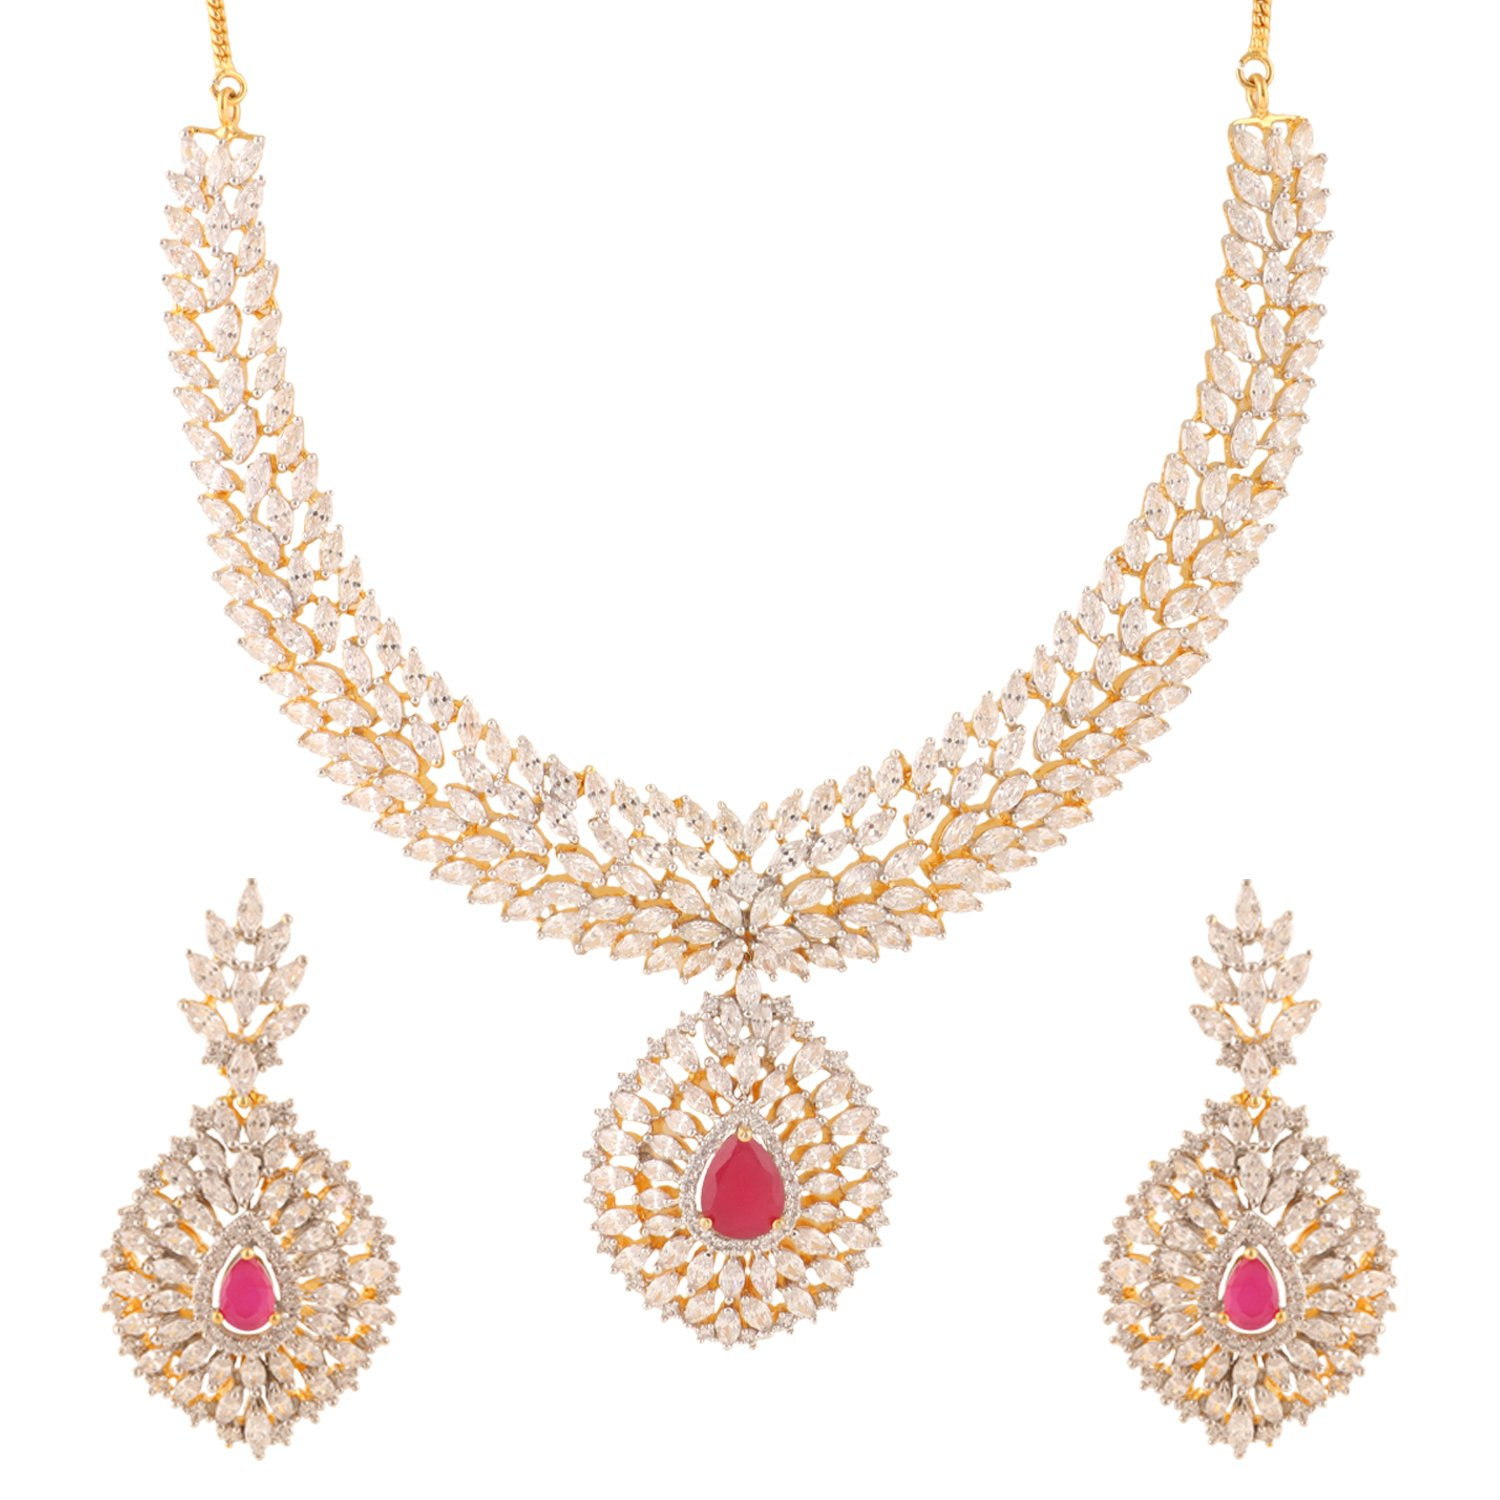 dp and shining jewellery set diva in pearl necklace women fashion for with amazon wear earrings party girls